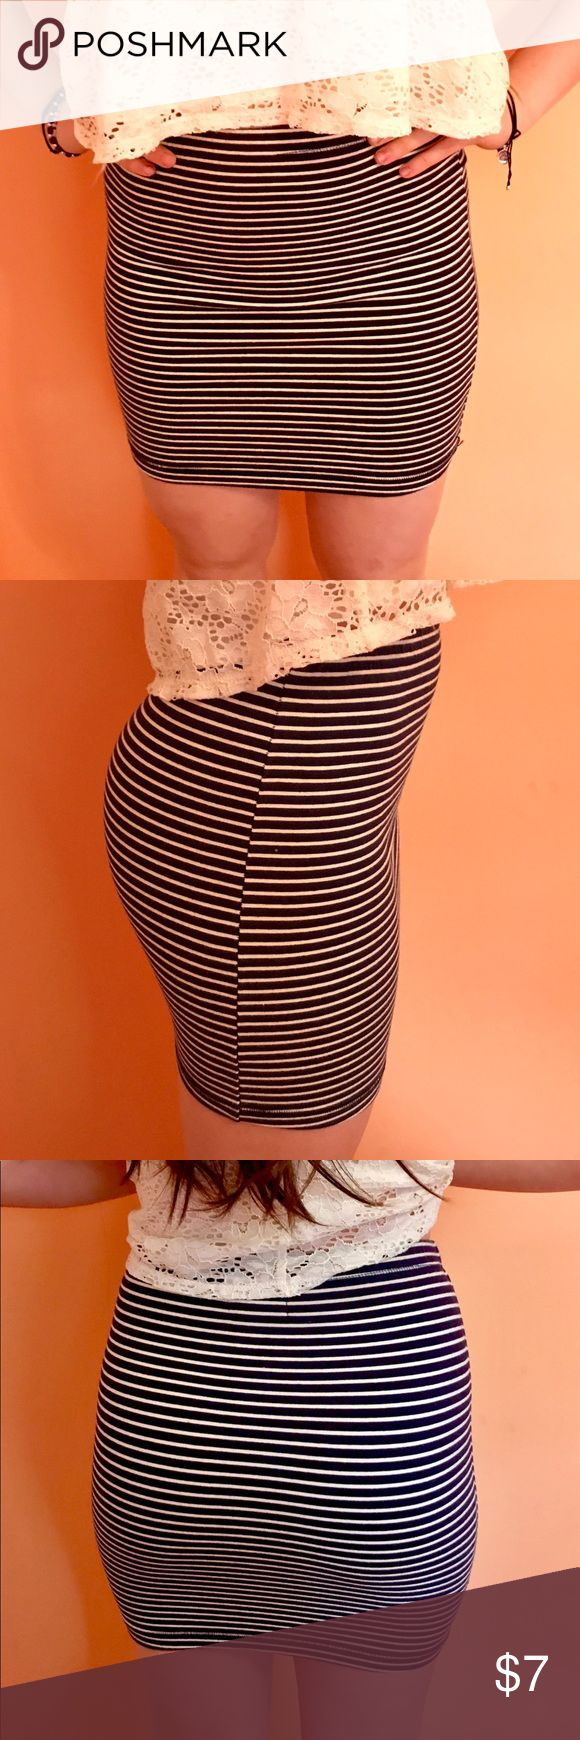 Navy blue and white stripe bodycon skirt Navy blue and white body con skirt. Very comfortable, not too short but not long either. Size 6 USA but could fit smaller as well. Obey Skirts Mini